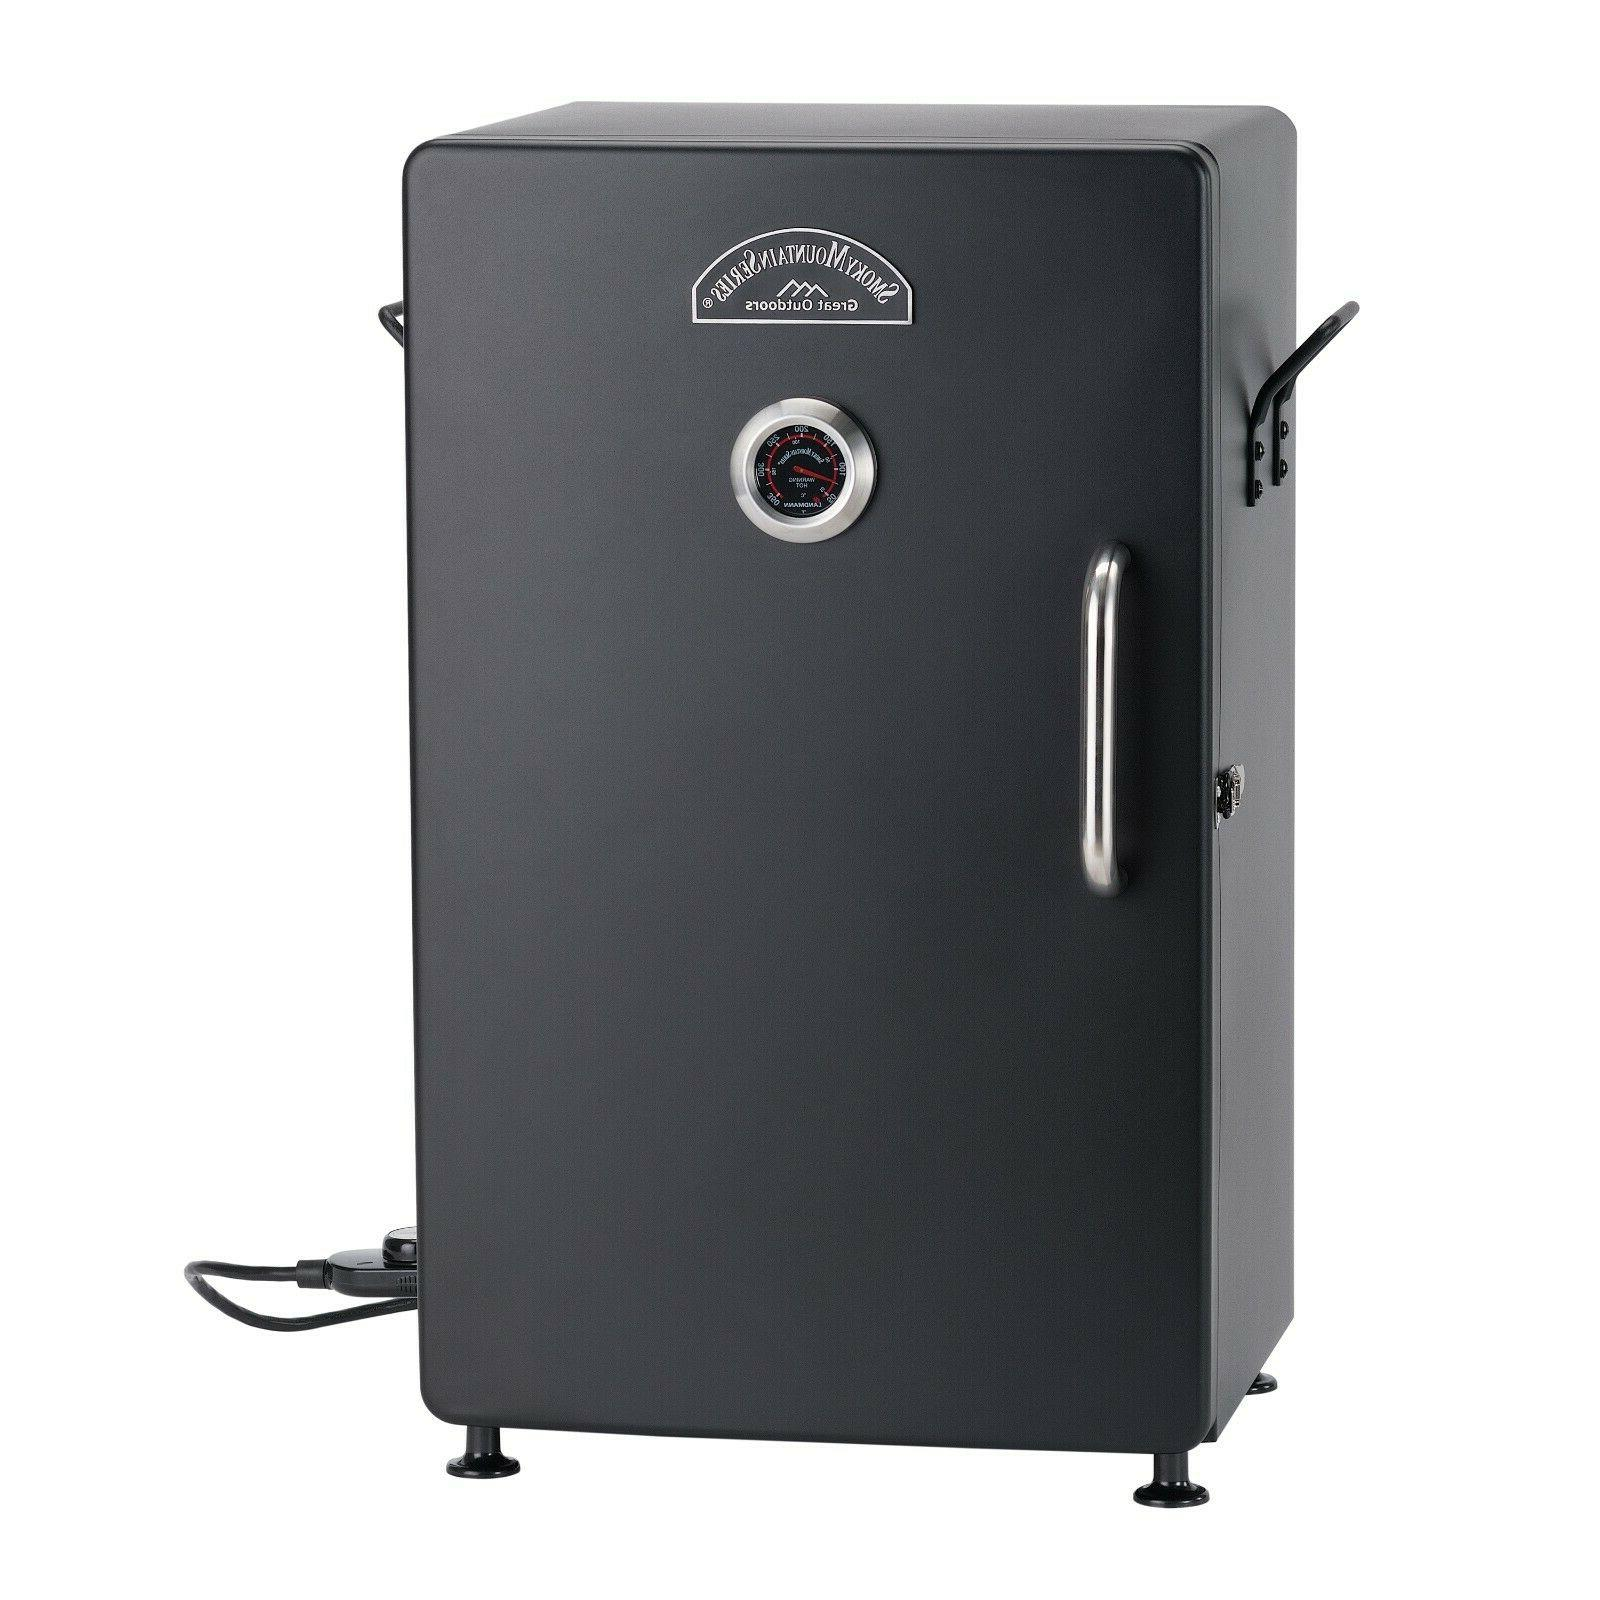 New Electric Barbecue Grill Outdoor Portable Meat Cooker